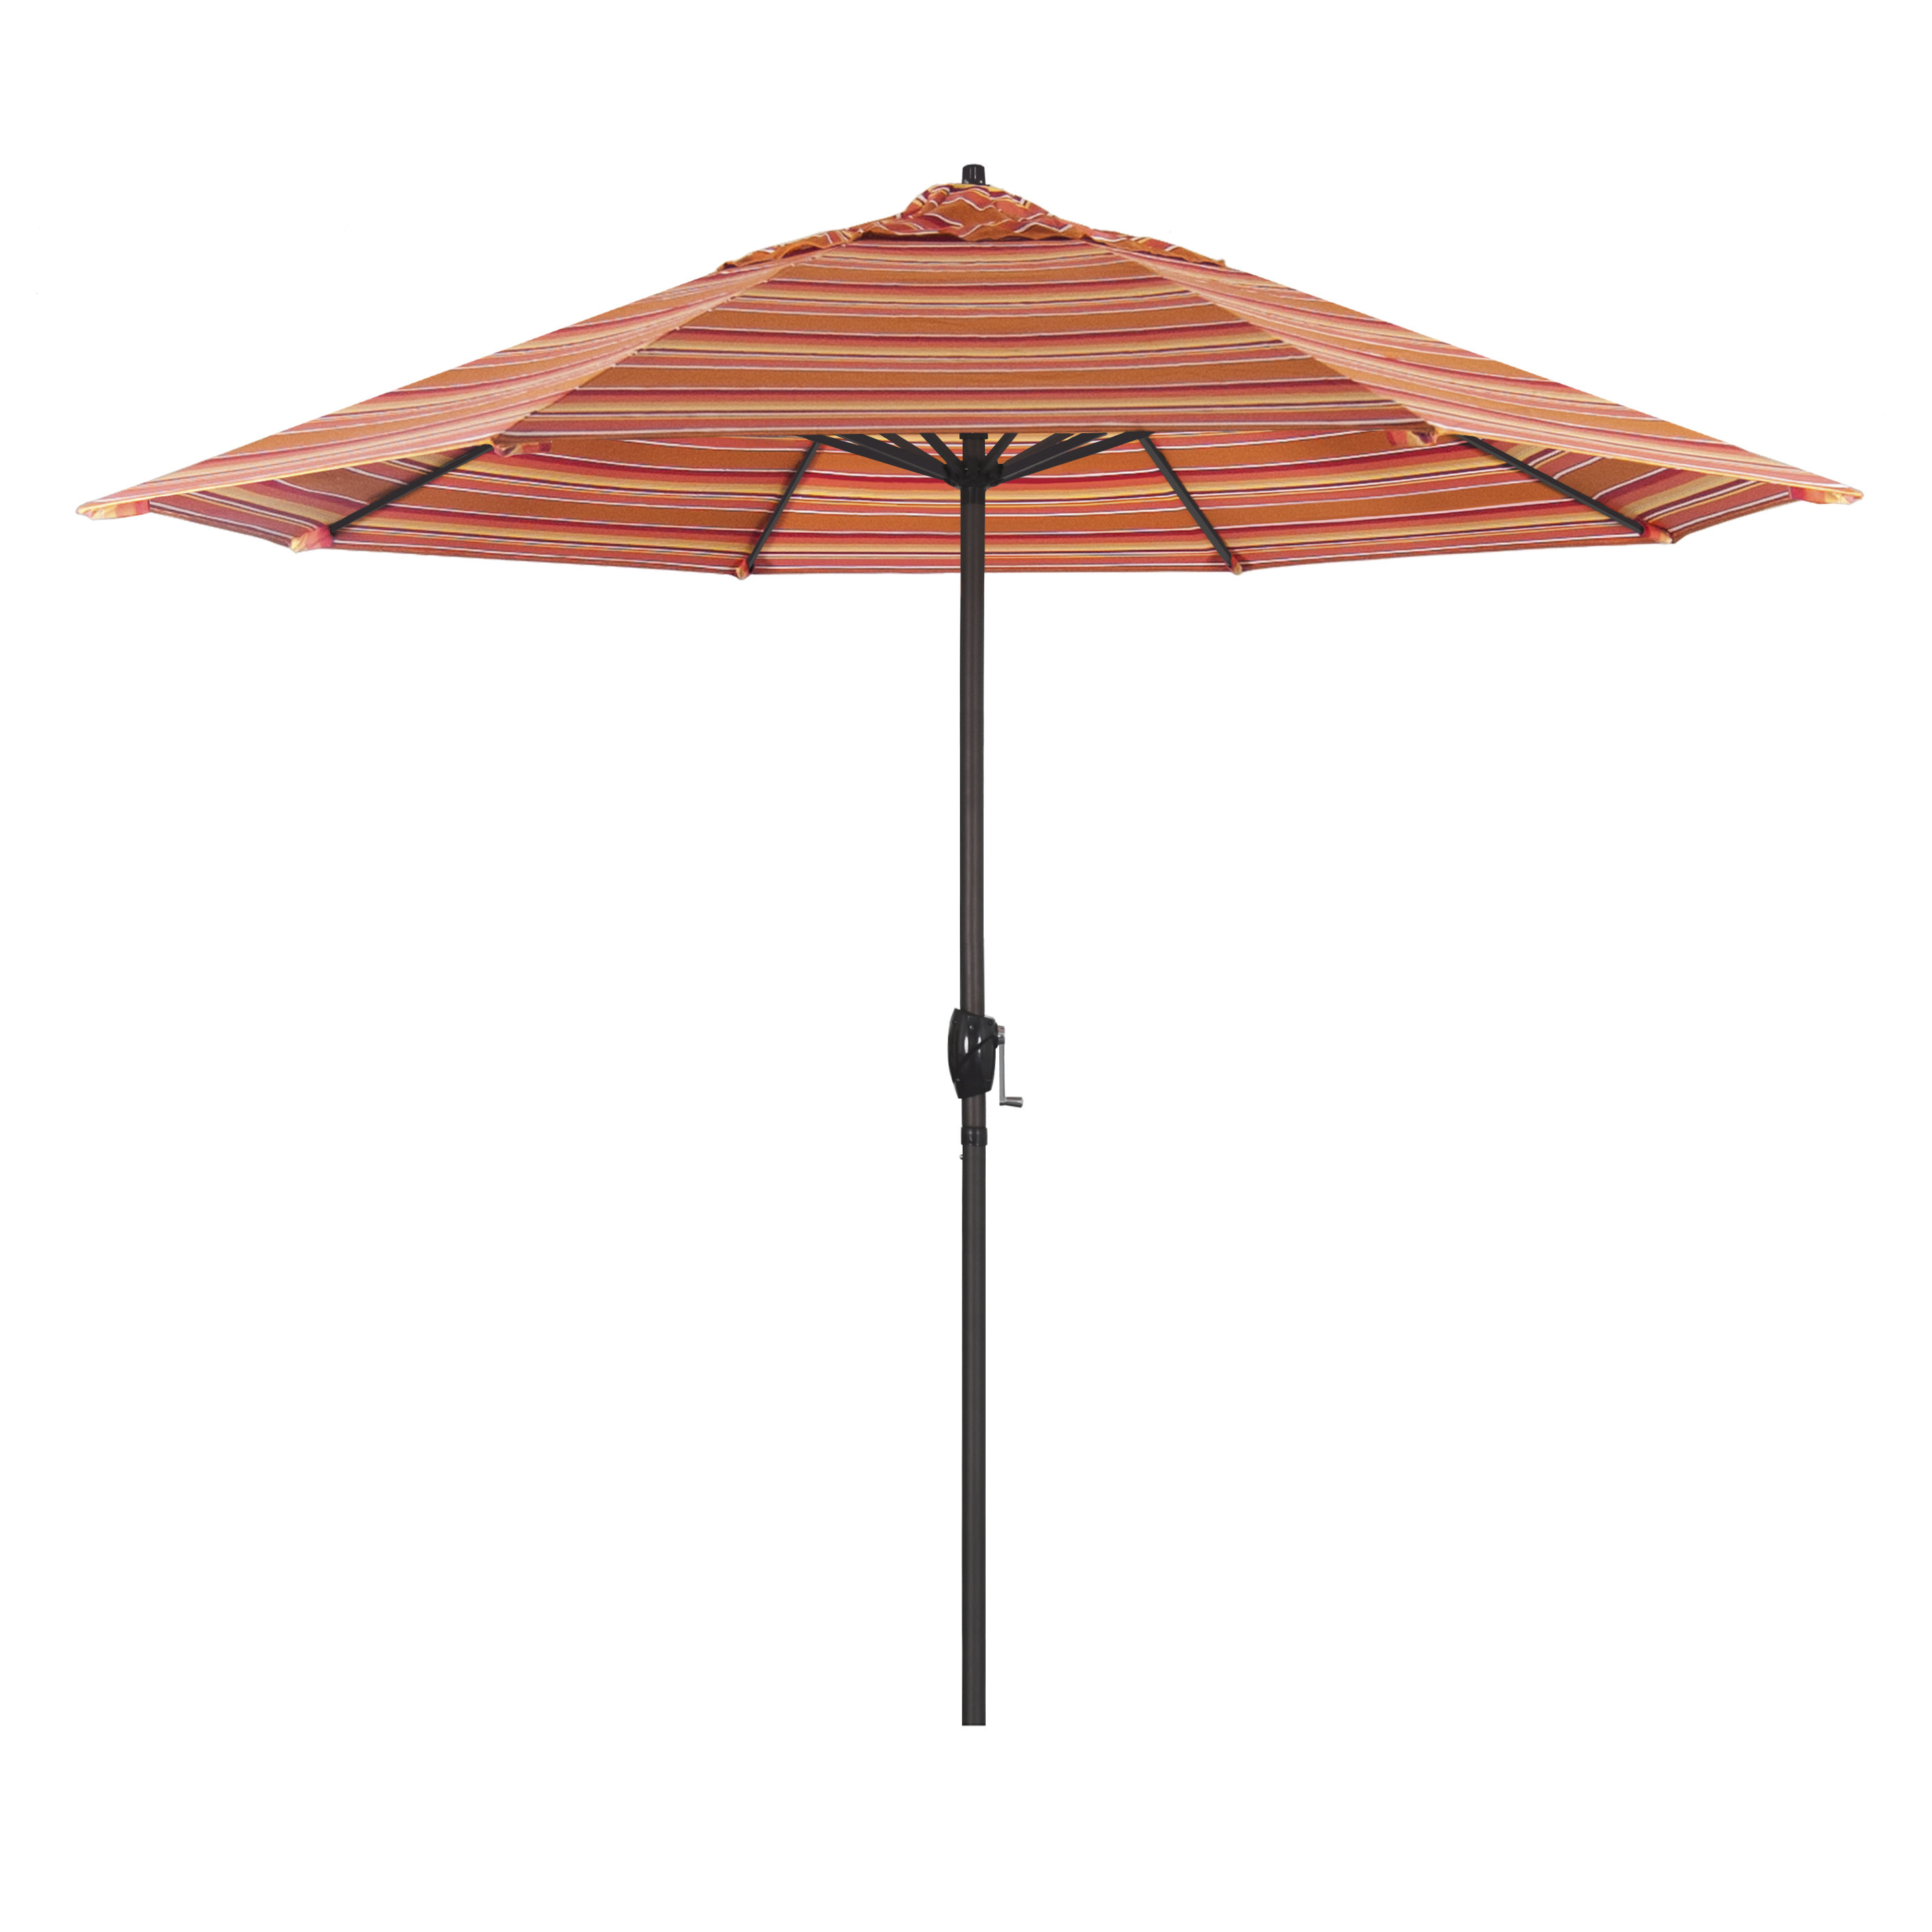 Best And Newest Cardine 9' Market Sunbrella Umbrella Throughout Crowland Market Sunbrella Umbrellas (View 8 of 20)